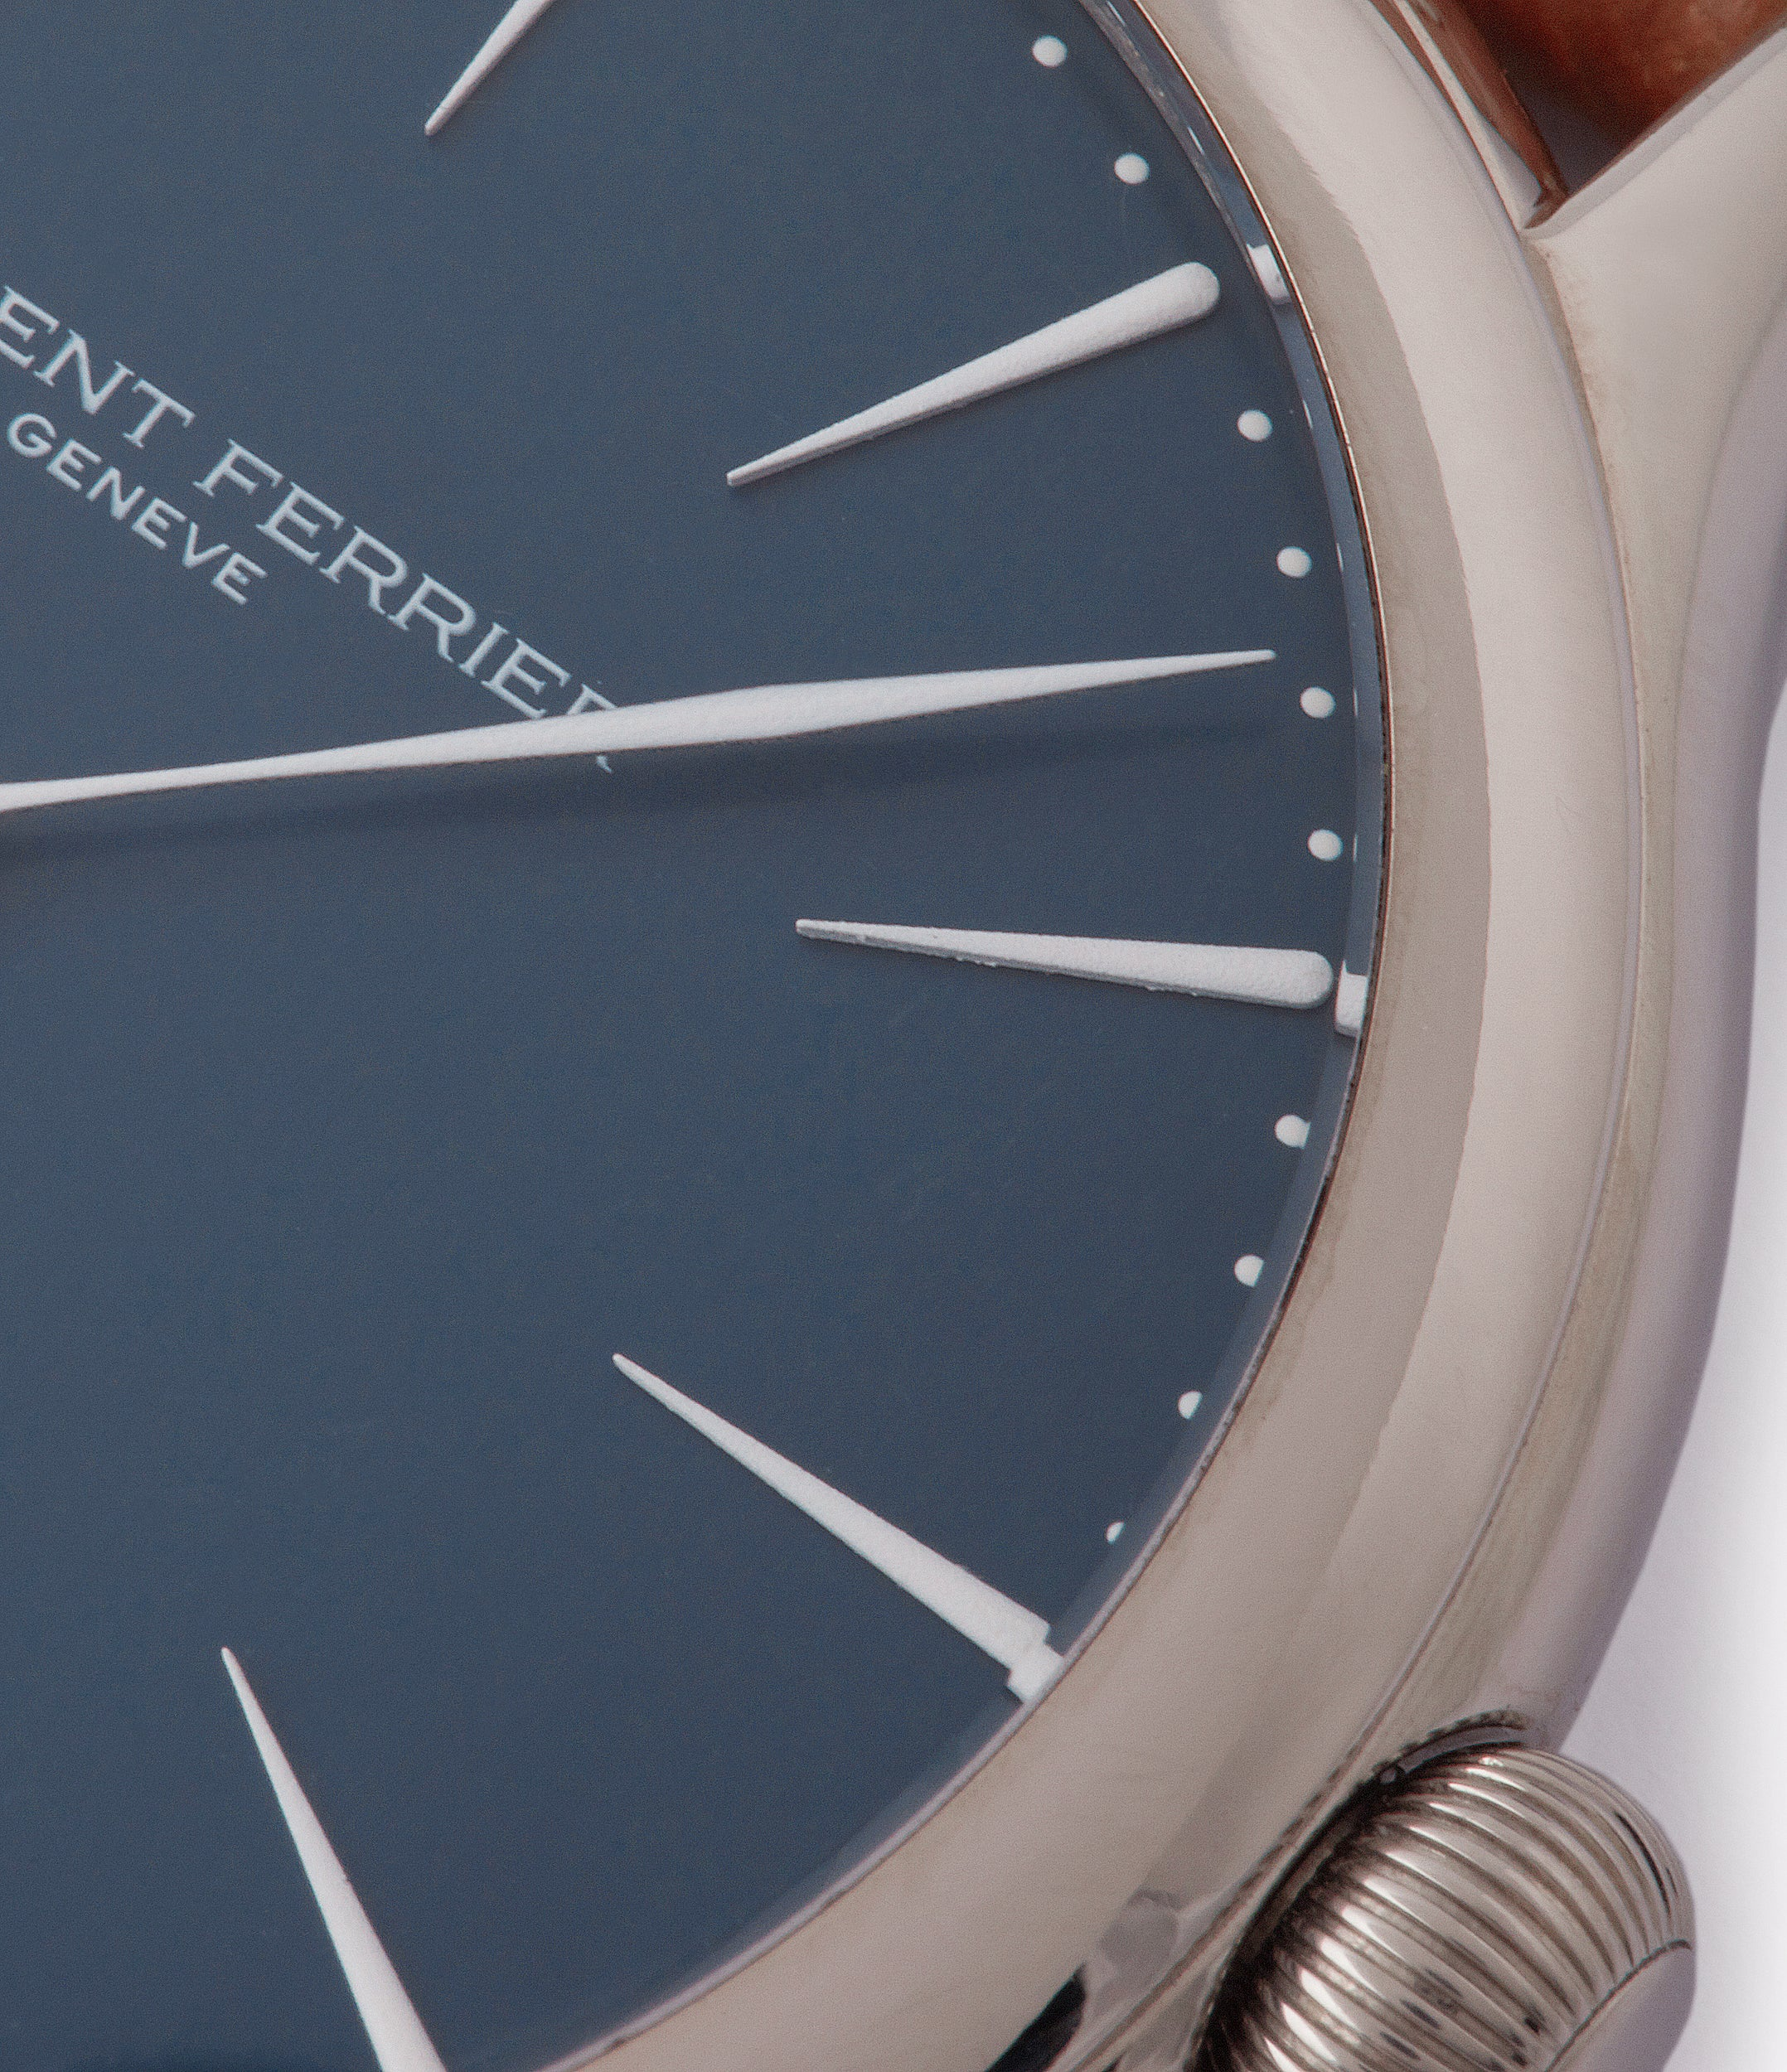 blue dial white gold Laurent Ferrier Galet Micro-Rotor LF229.01 blue dial white gold watch for sale online at A Collected Man London UK approved seller of independent watchmaker Laurent Ferrier